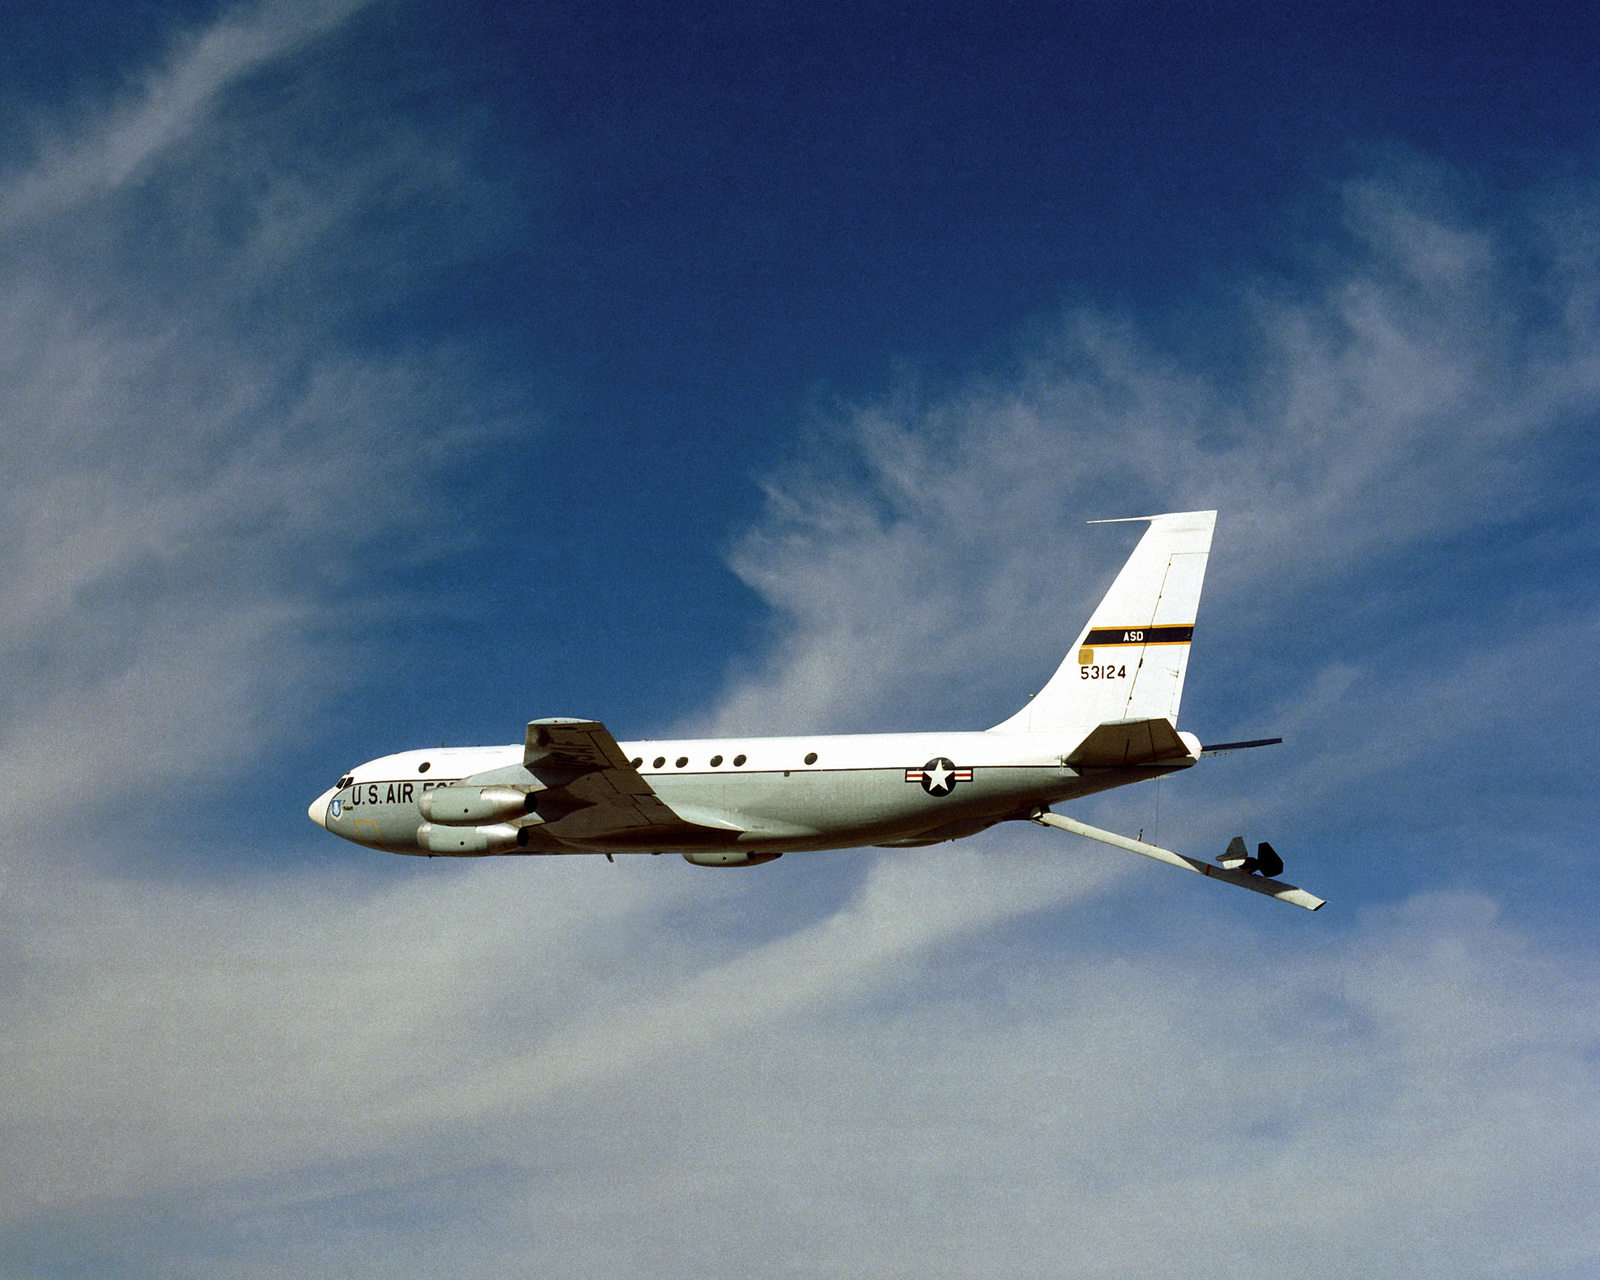 An air-to-air left side view of a KC-135A Stratotanker aircraft with the Advanced Aerial Refueling Boom extended